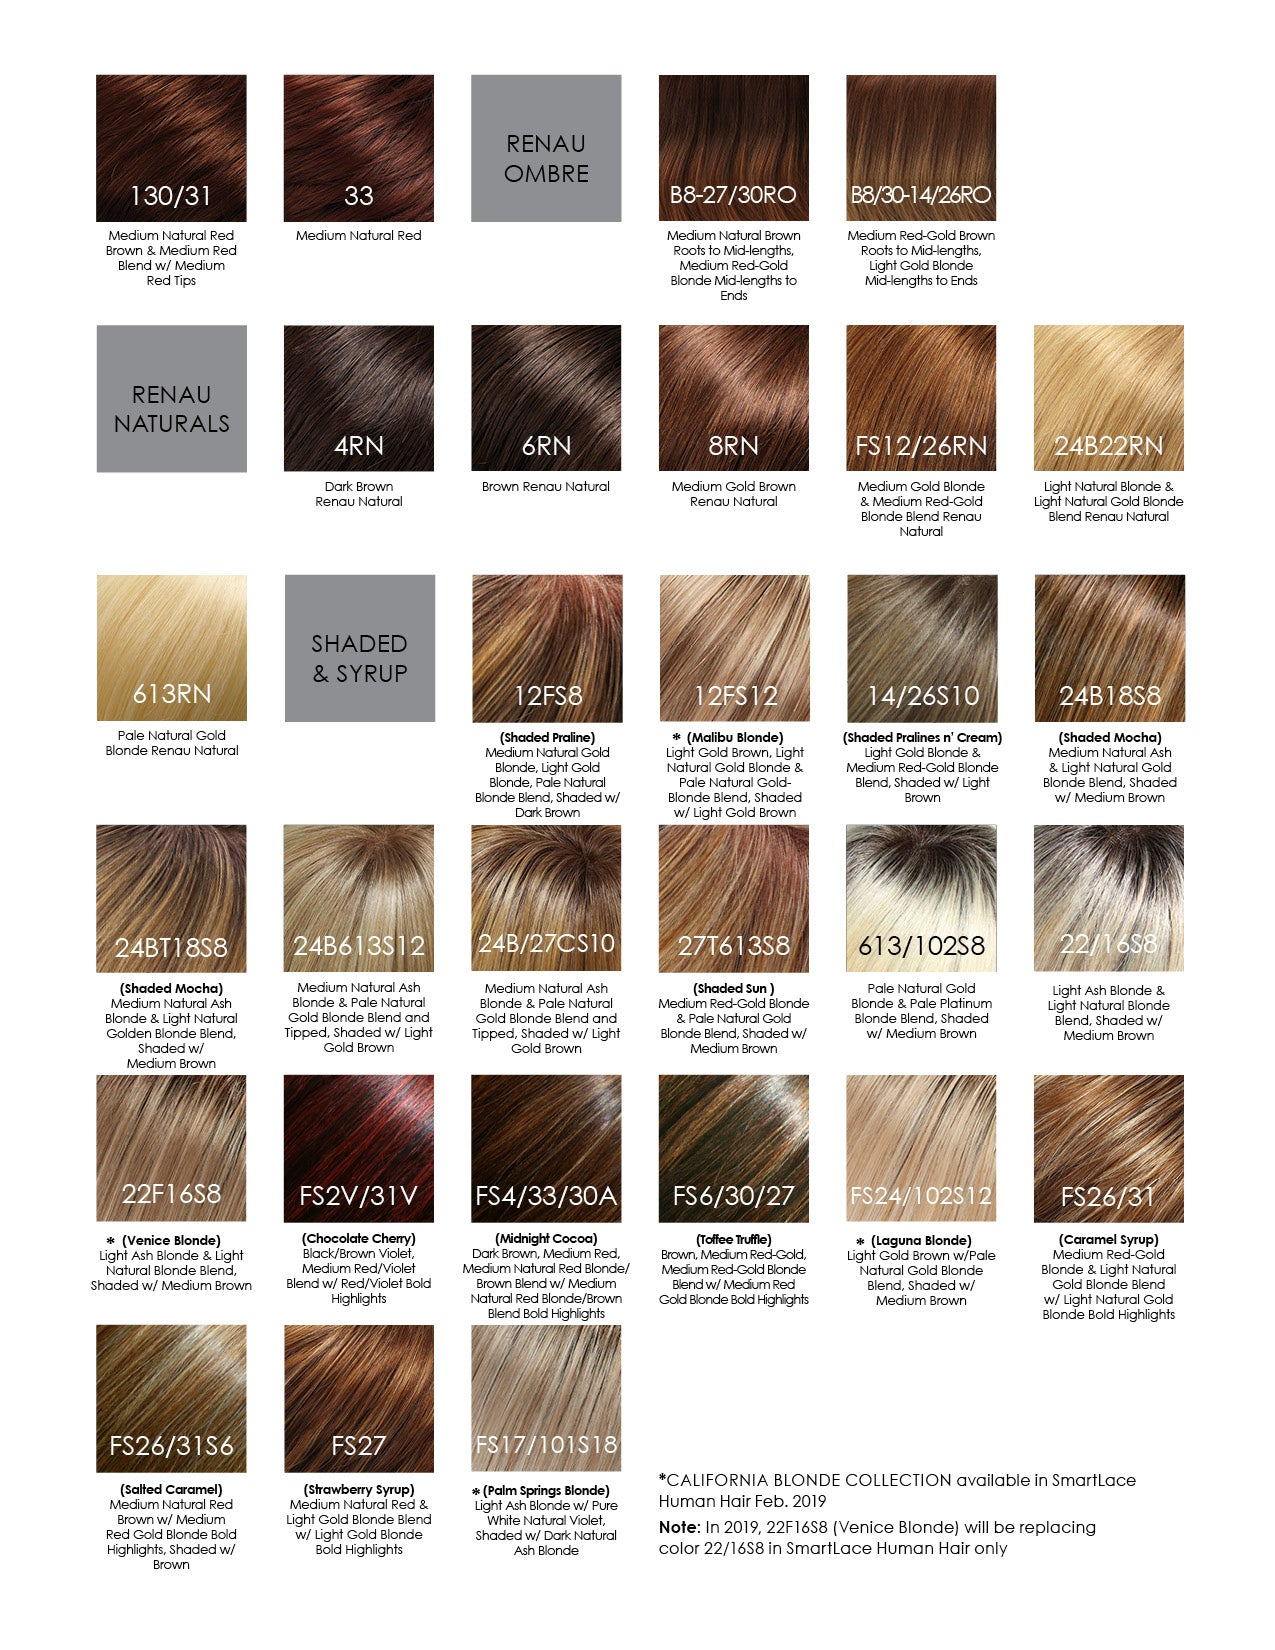 Jon Renau Human Hair Wig Colors 2